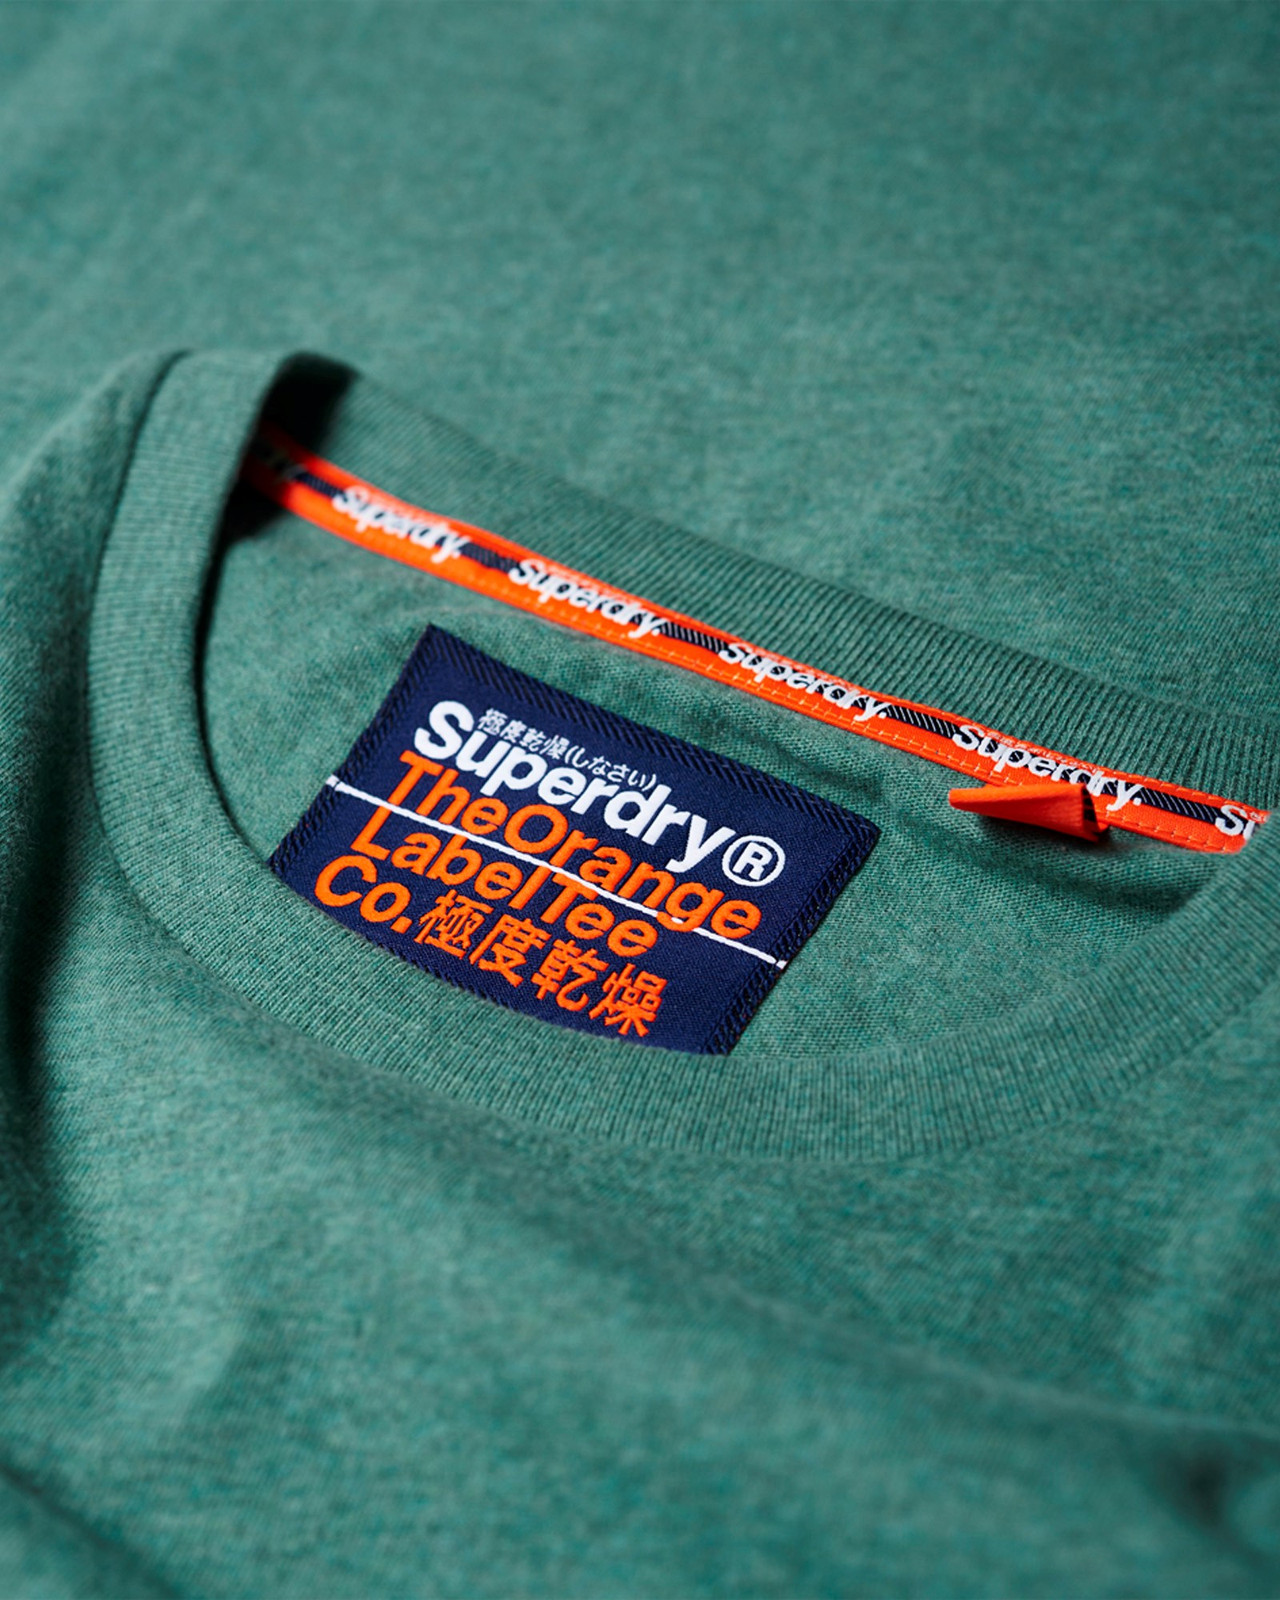 Superdry Mens Orange Label Vintage Embroidery Tee Green Plain T Shirts 4